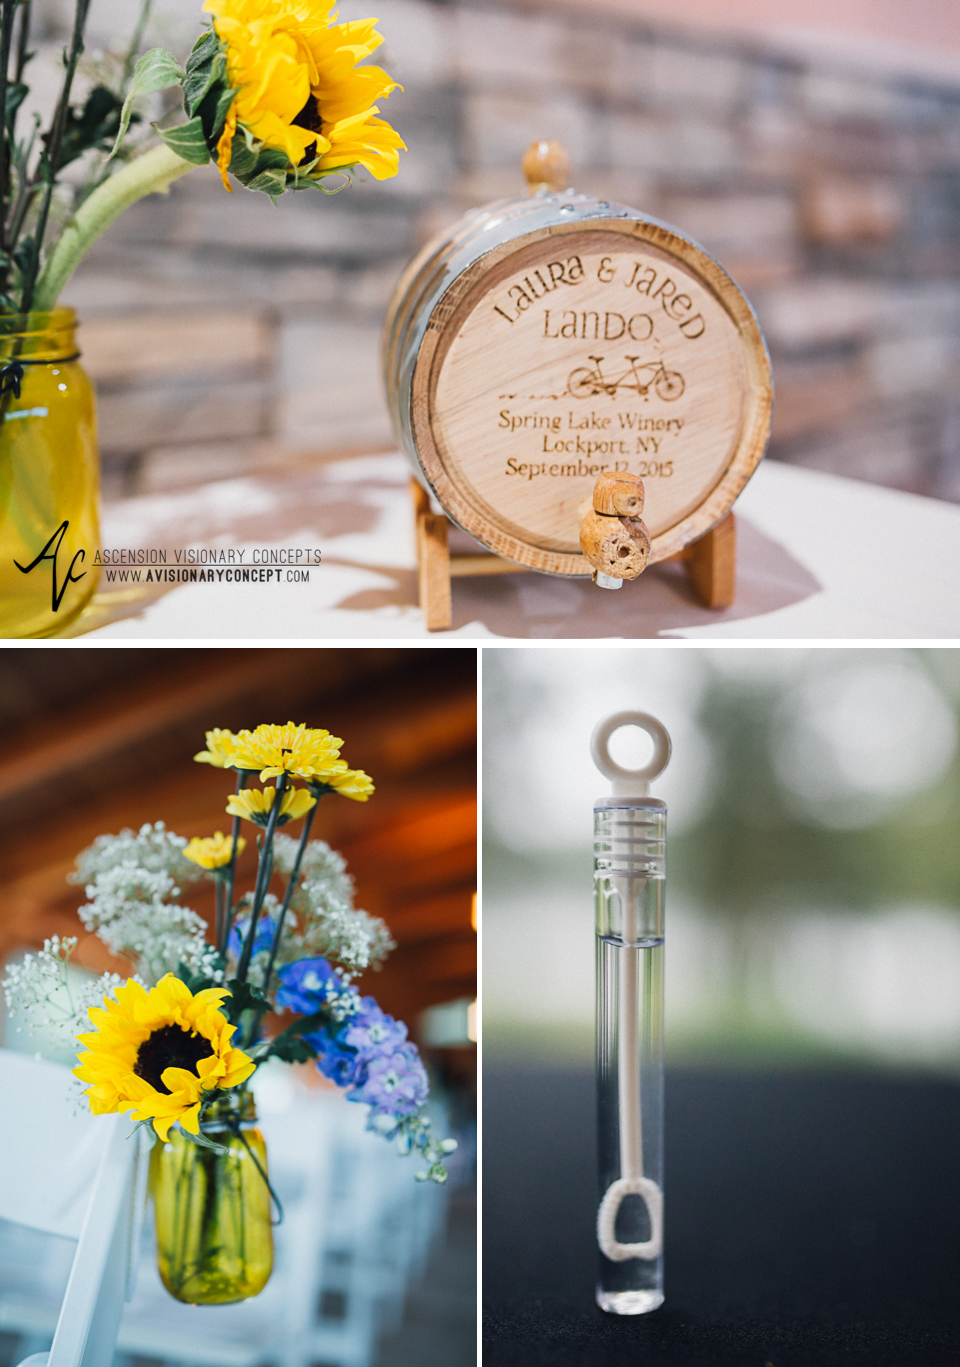 Buffalo Wedding Photography Spring Lake Winery 057 - Wedding Reception Details.jpg